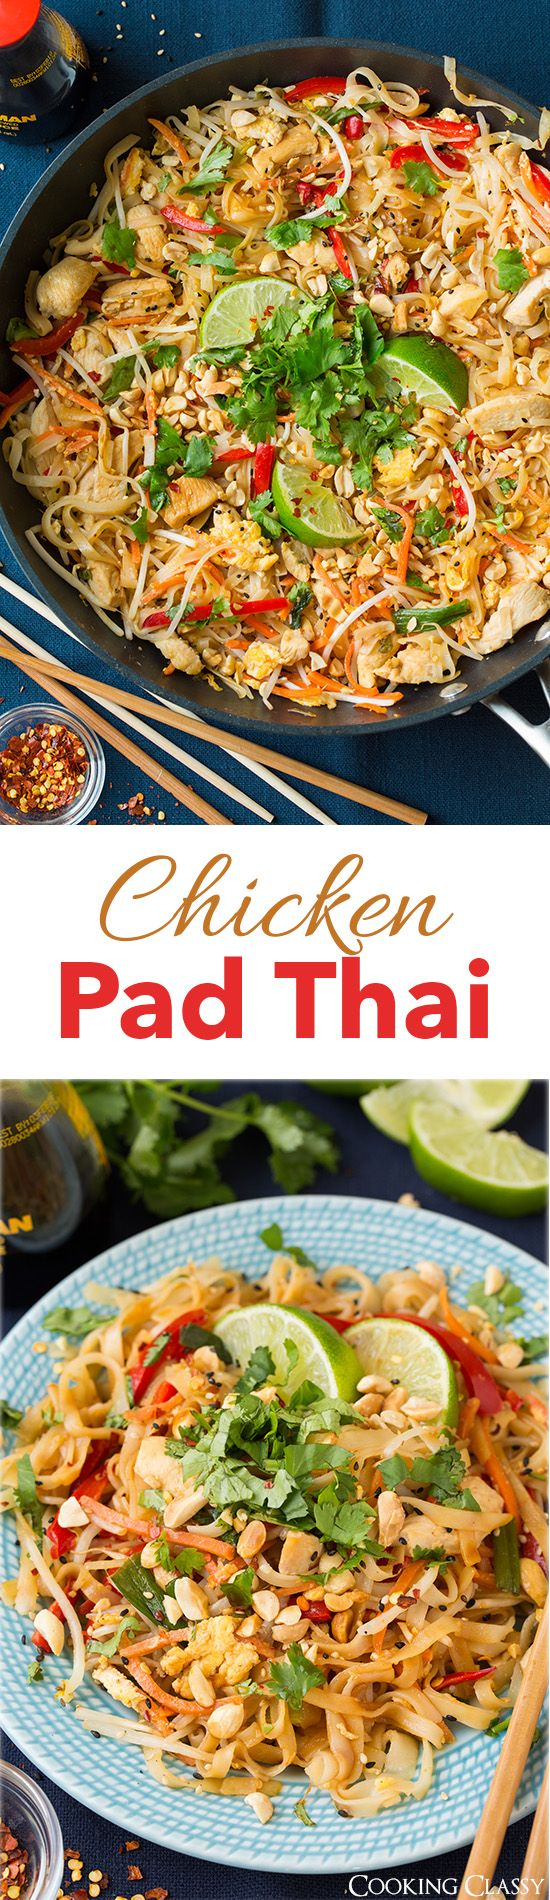 Chicken Pad Thai!